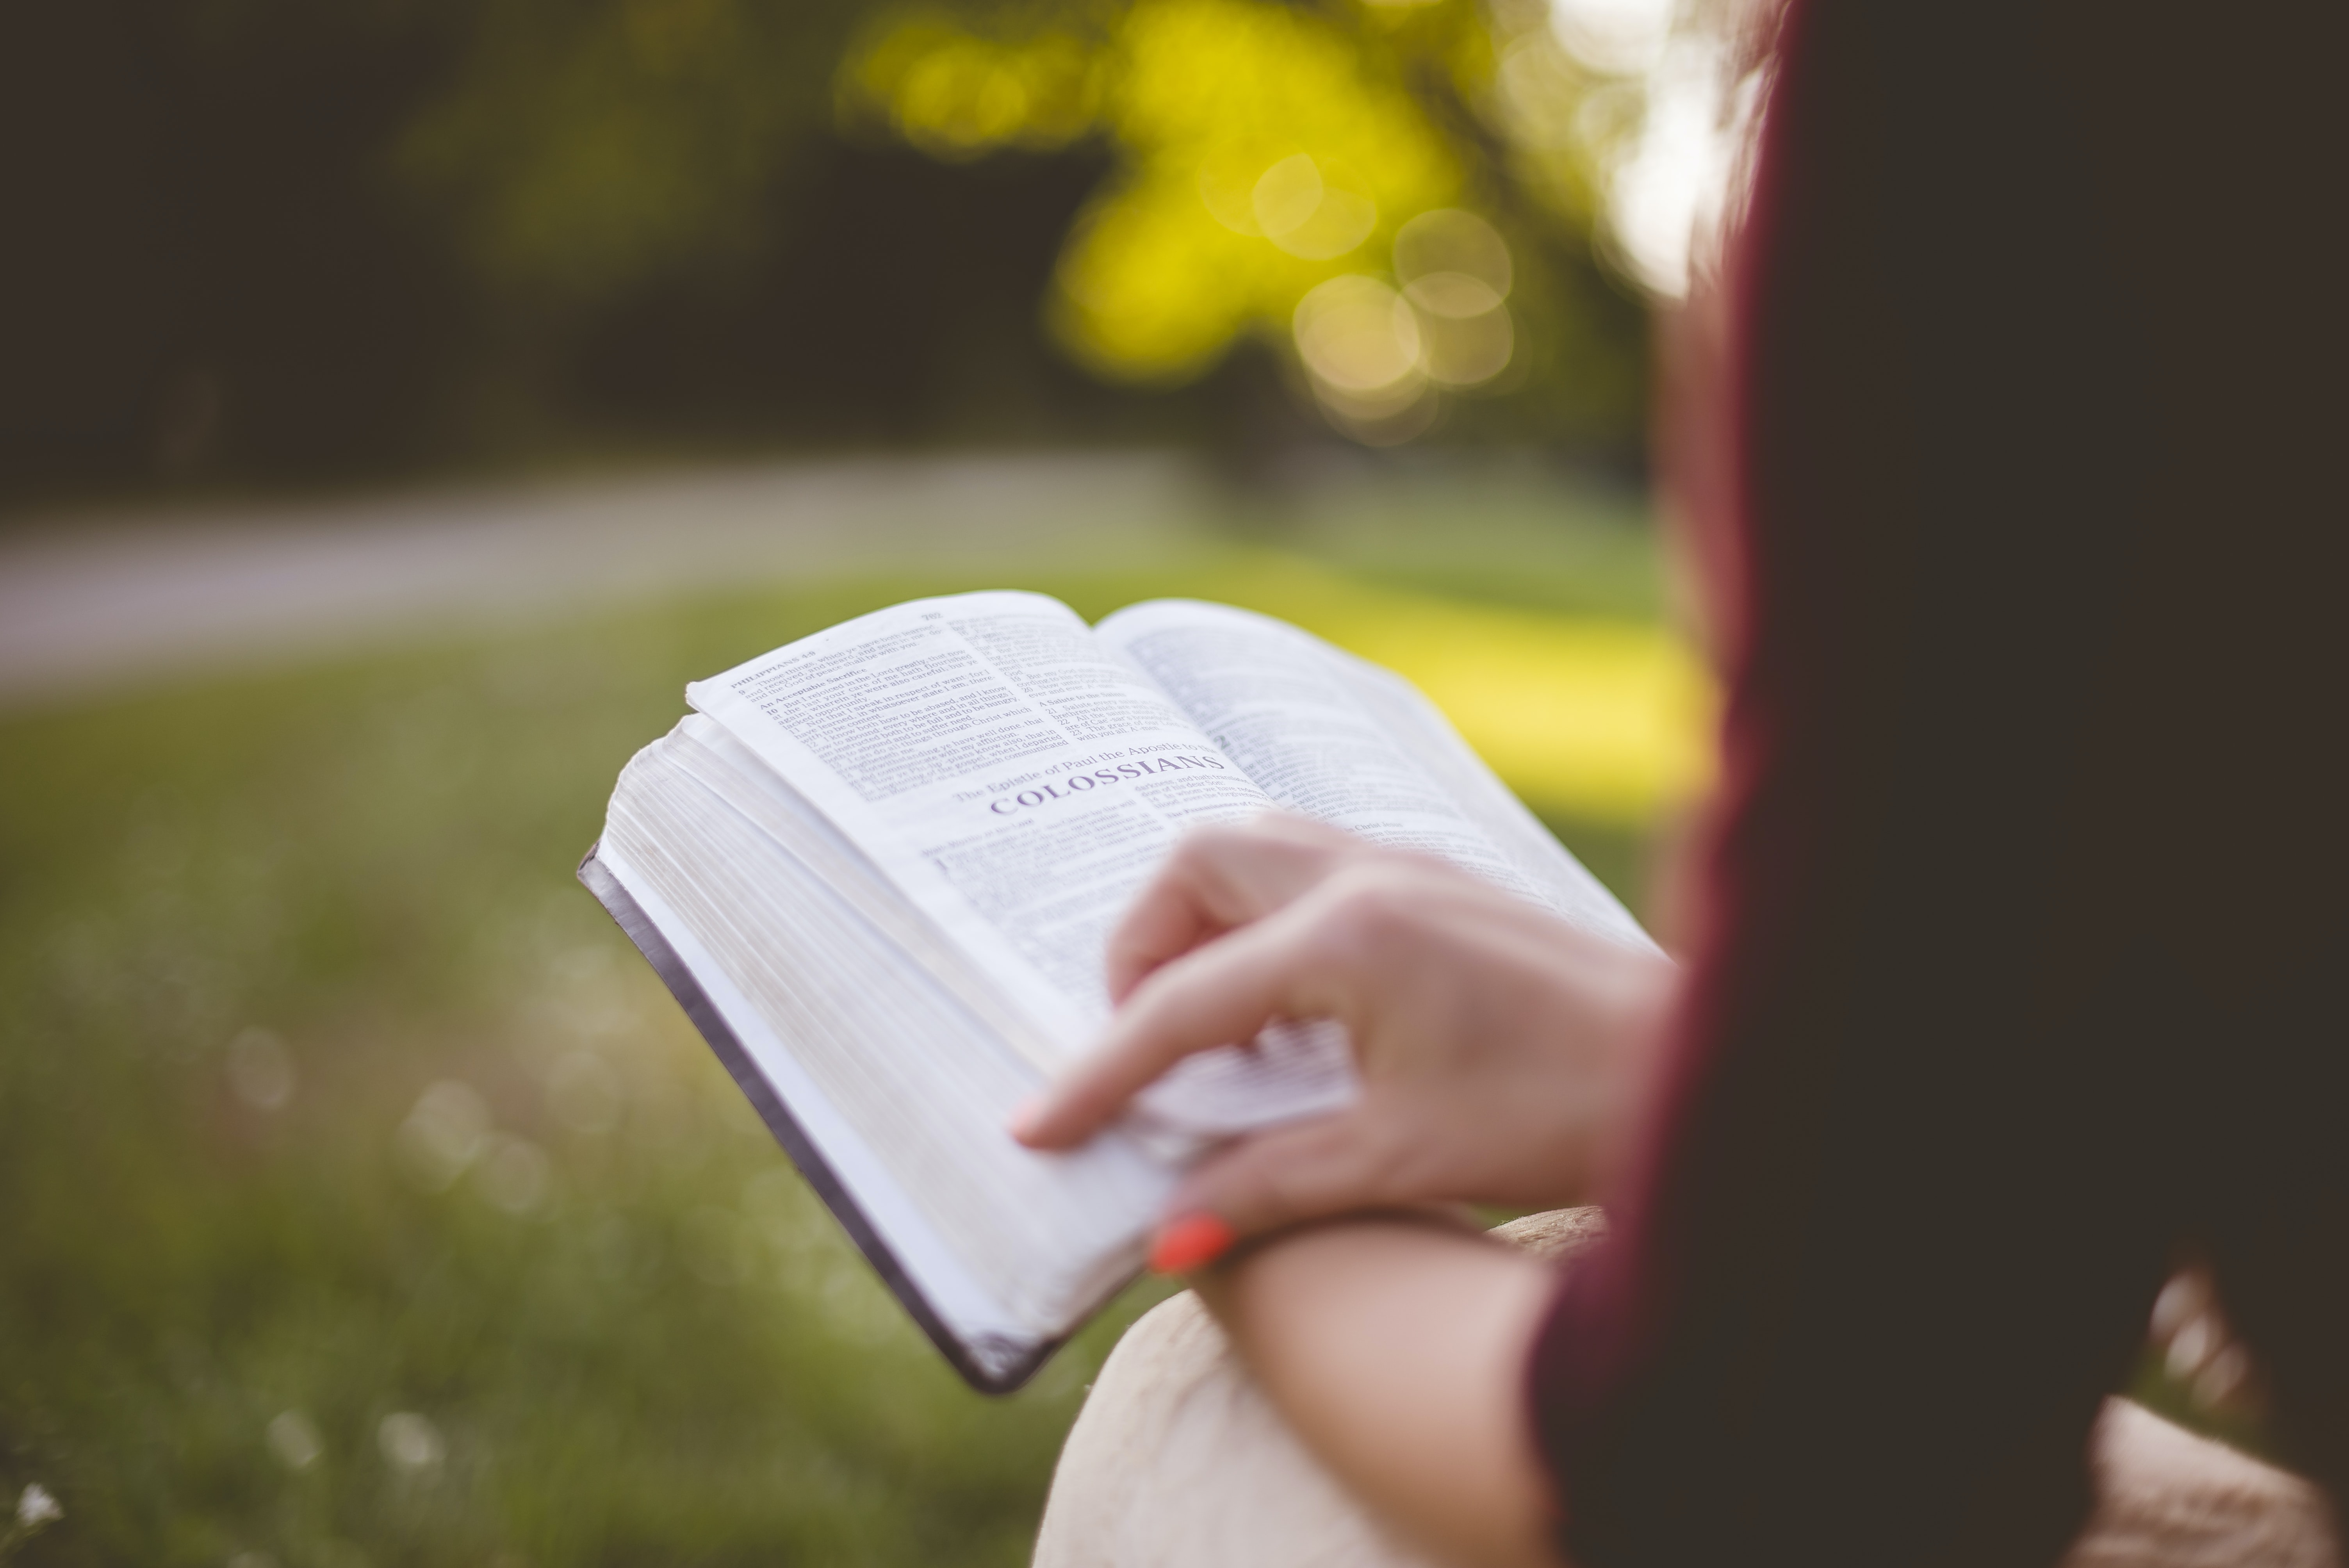 selective focus photography of person reading book